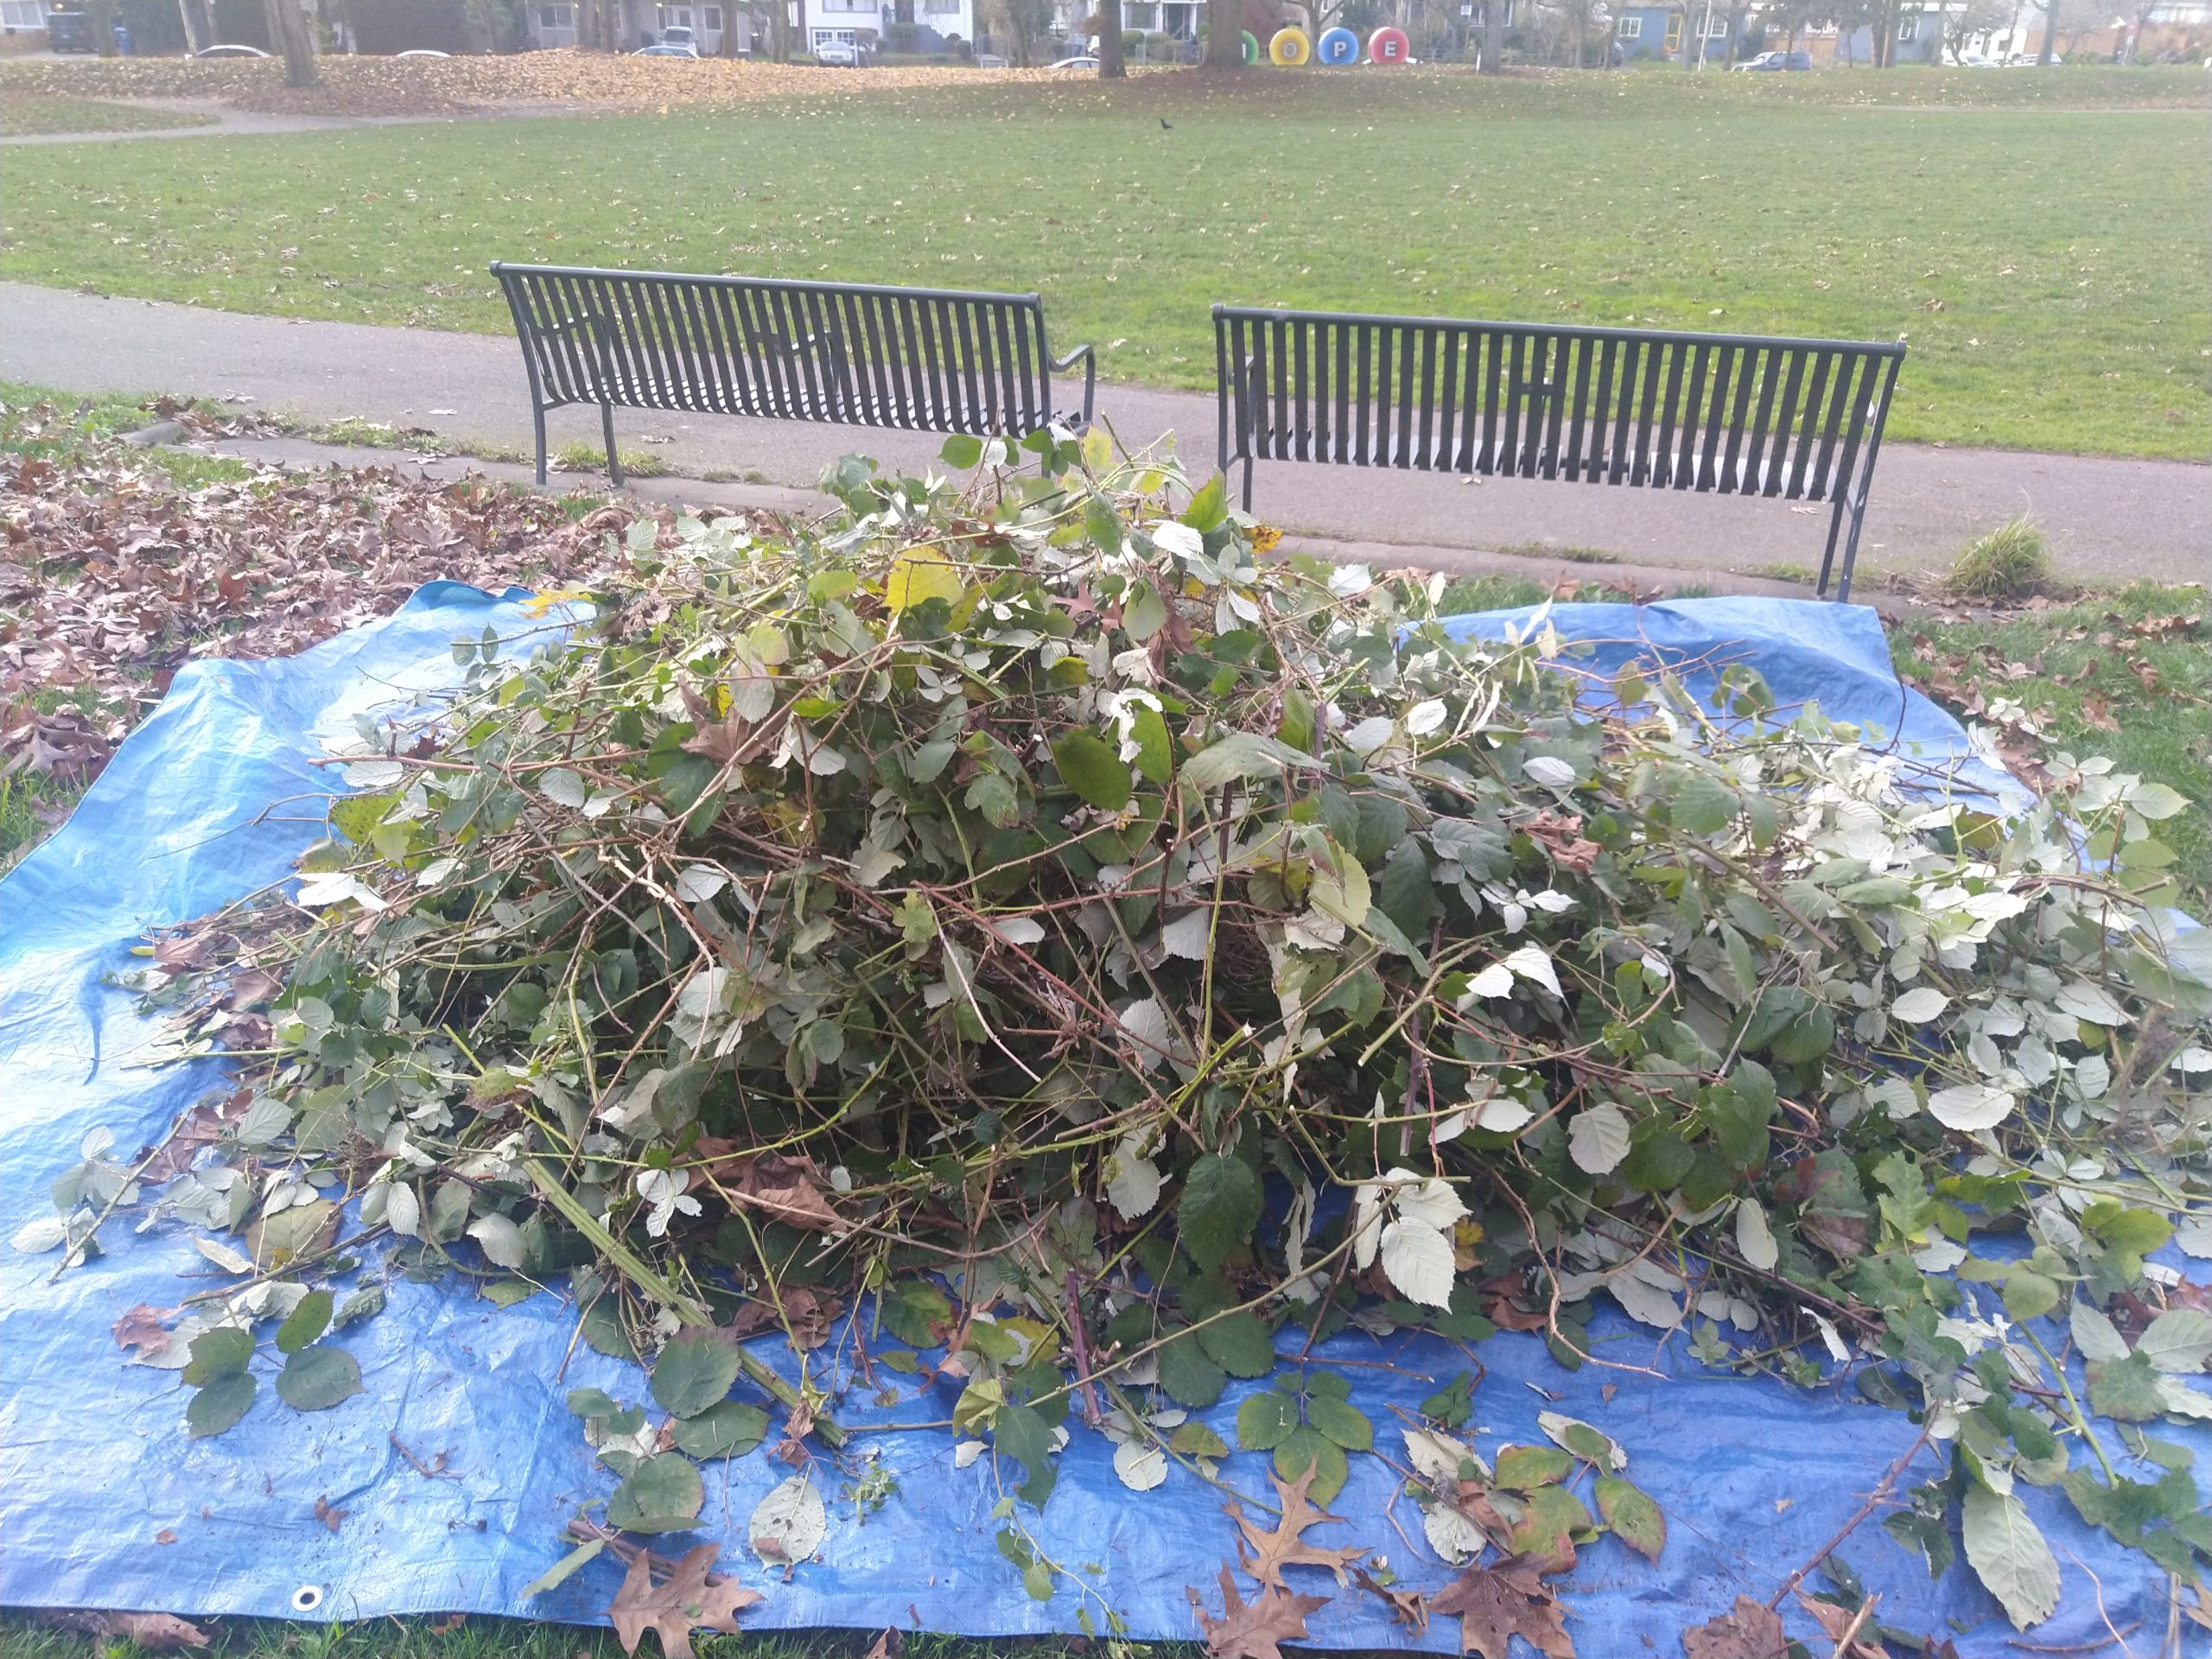 Image description: A large, blue tarp, wider than two park benches, covered with a pile of blackberry vines